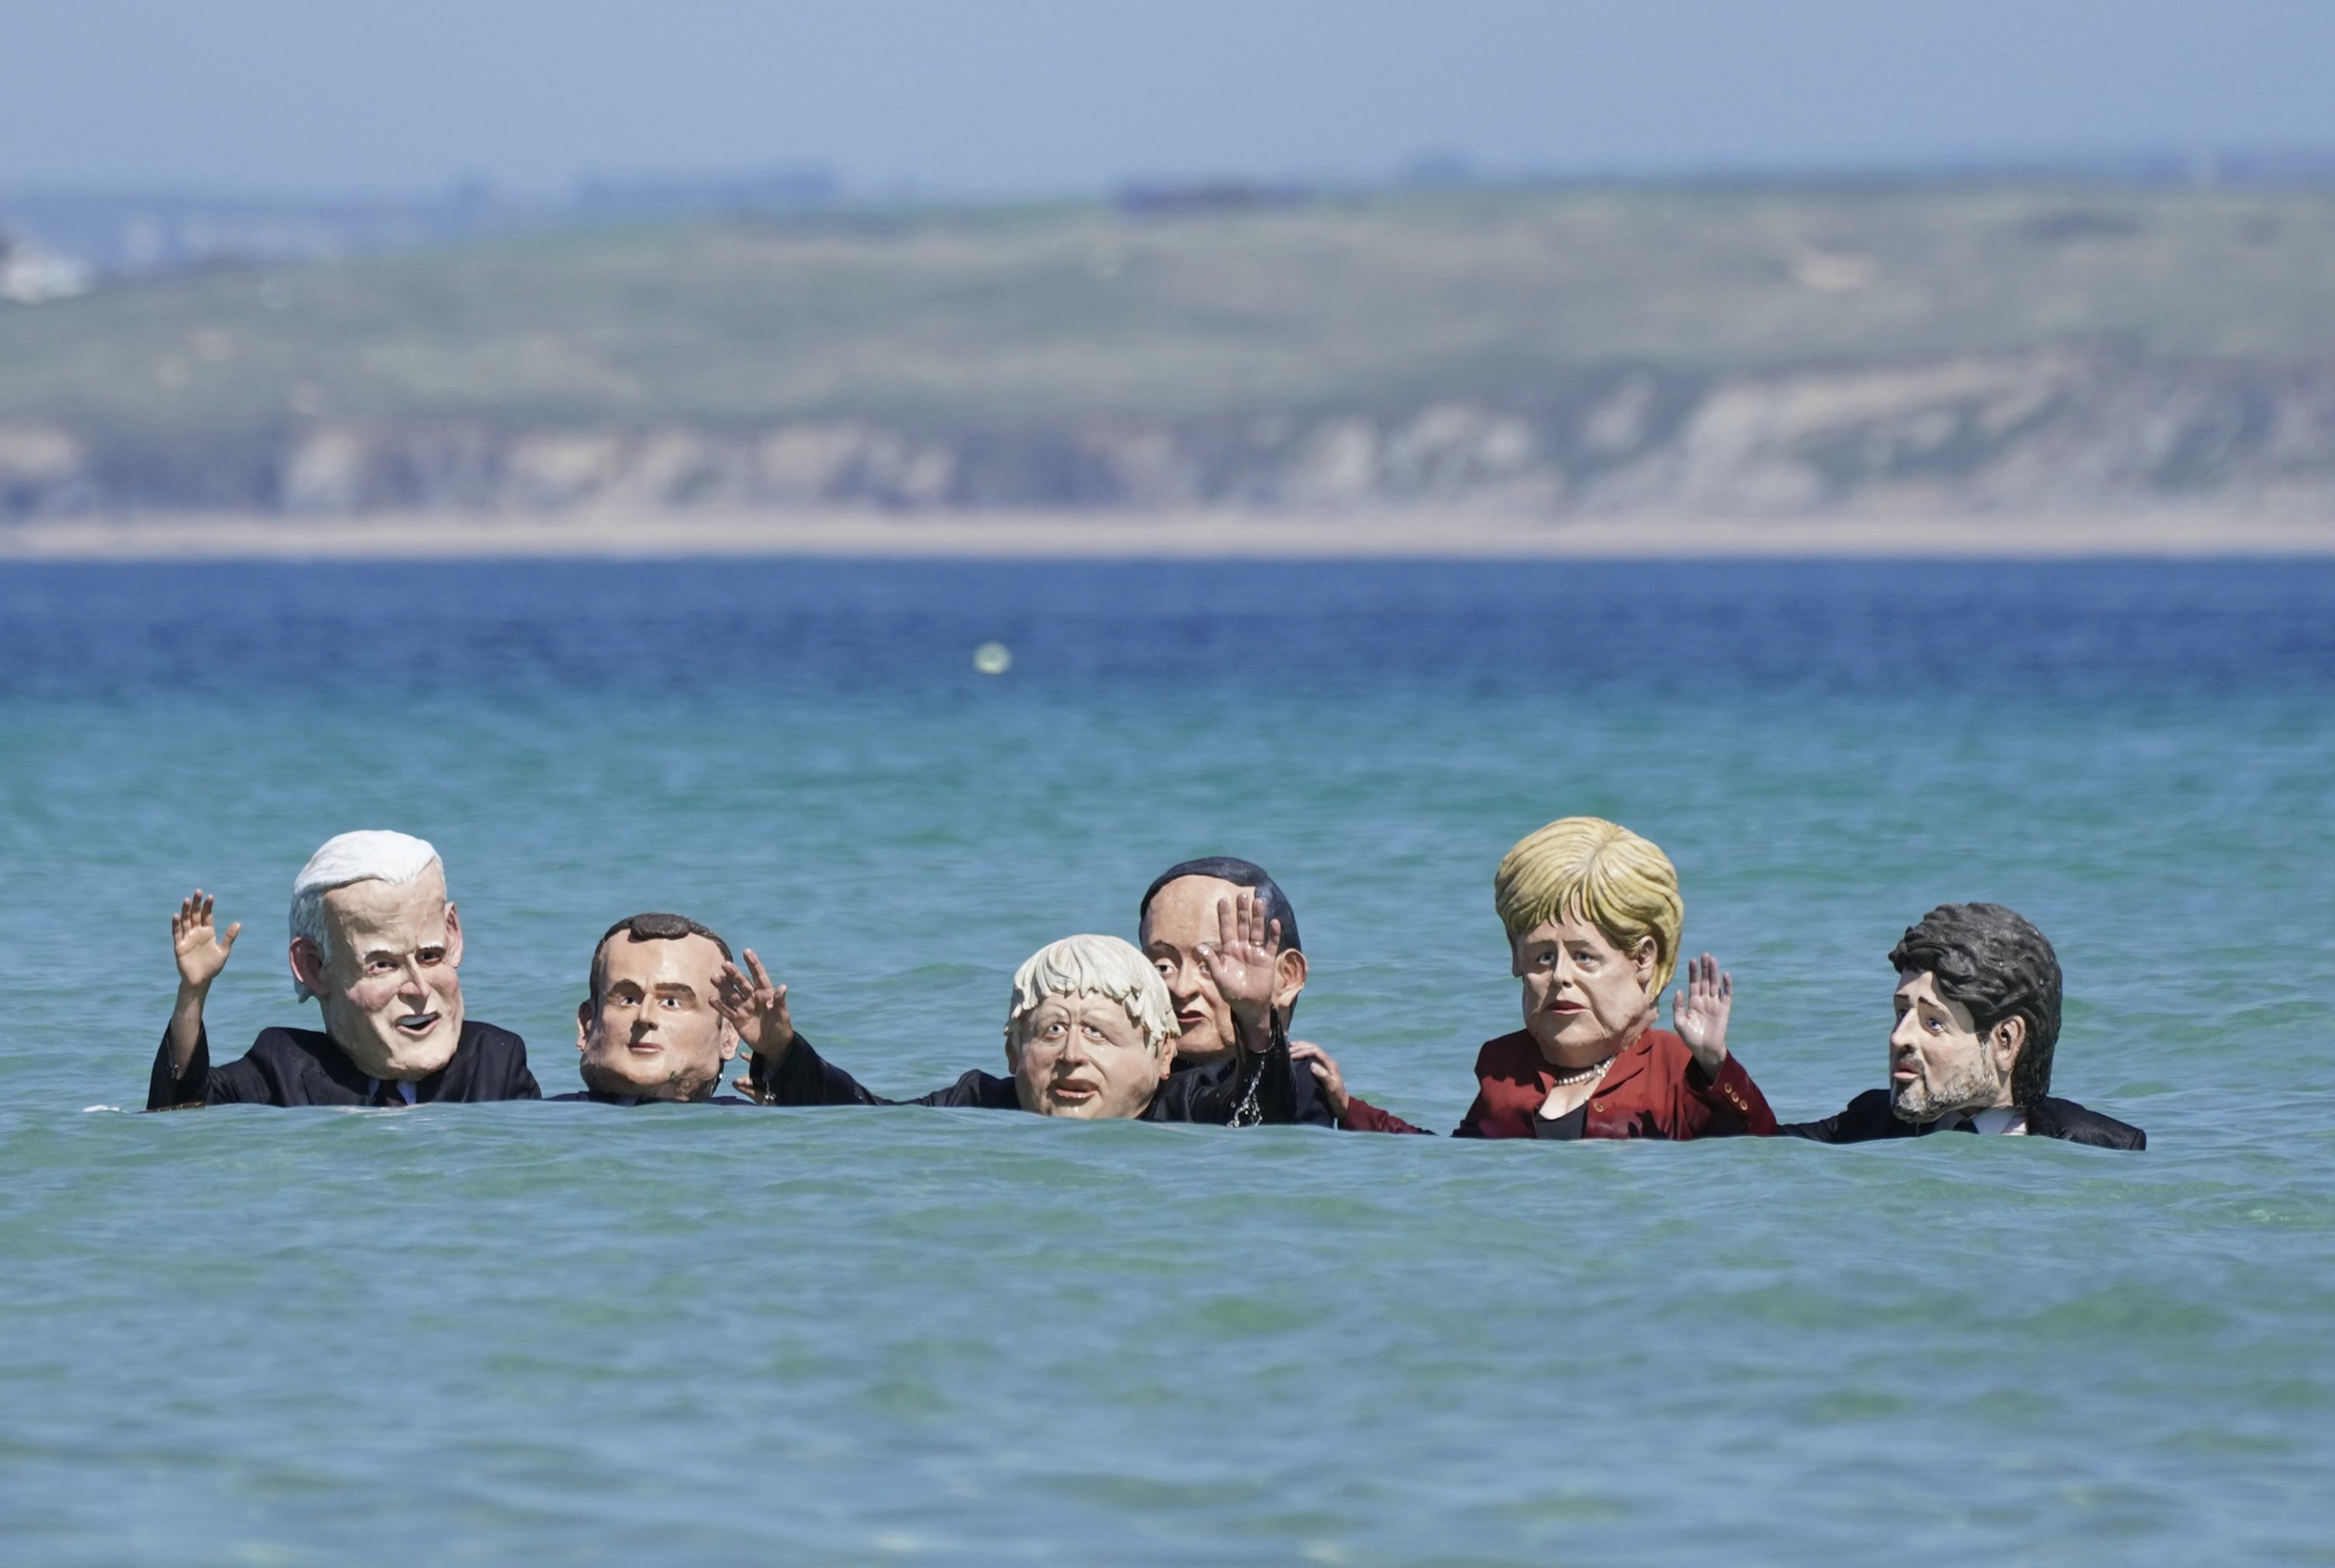 Protestors wearing giant heads portraying G-7 leaders swim in the water during a demonstration outside the G-7 meeting in St. Ives, Cornwall, U.K., June 13, 2021. (AP Photo)